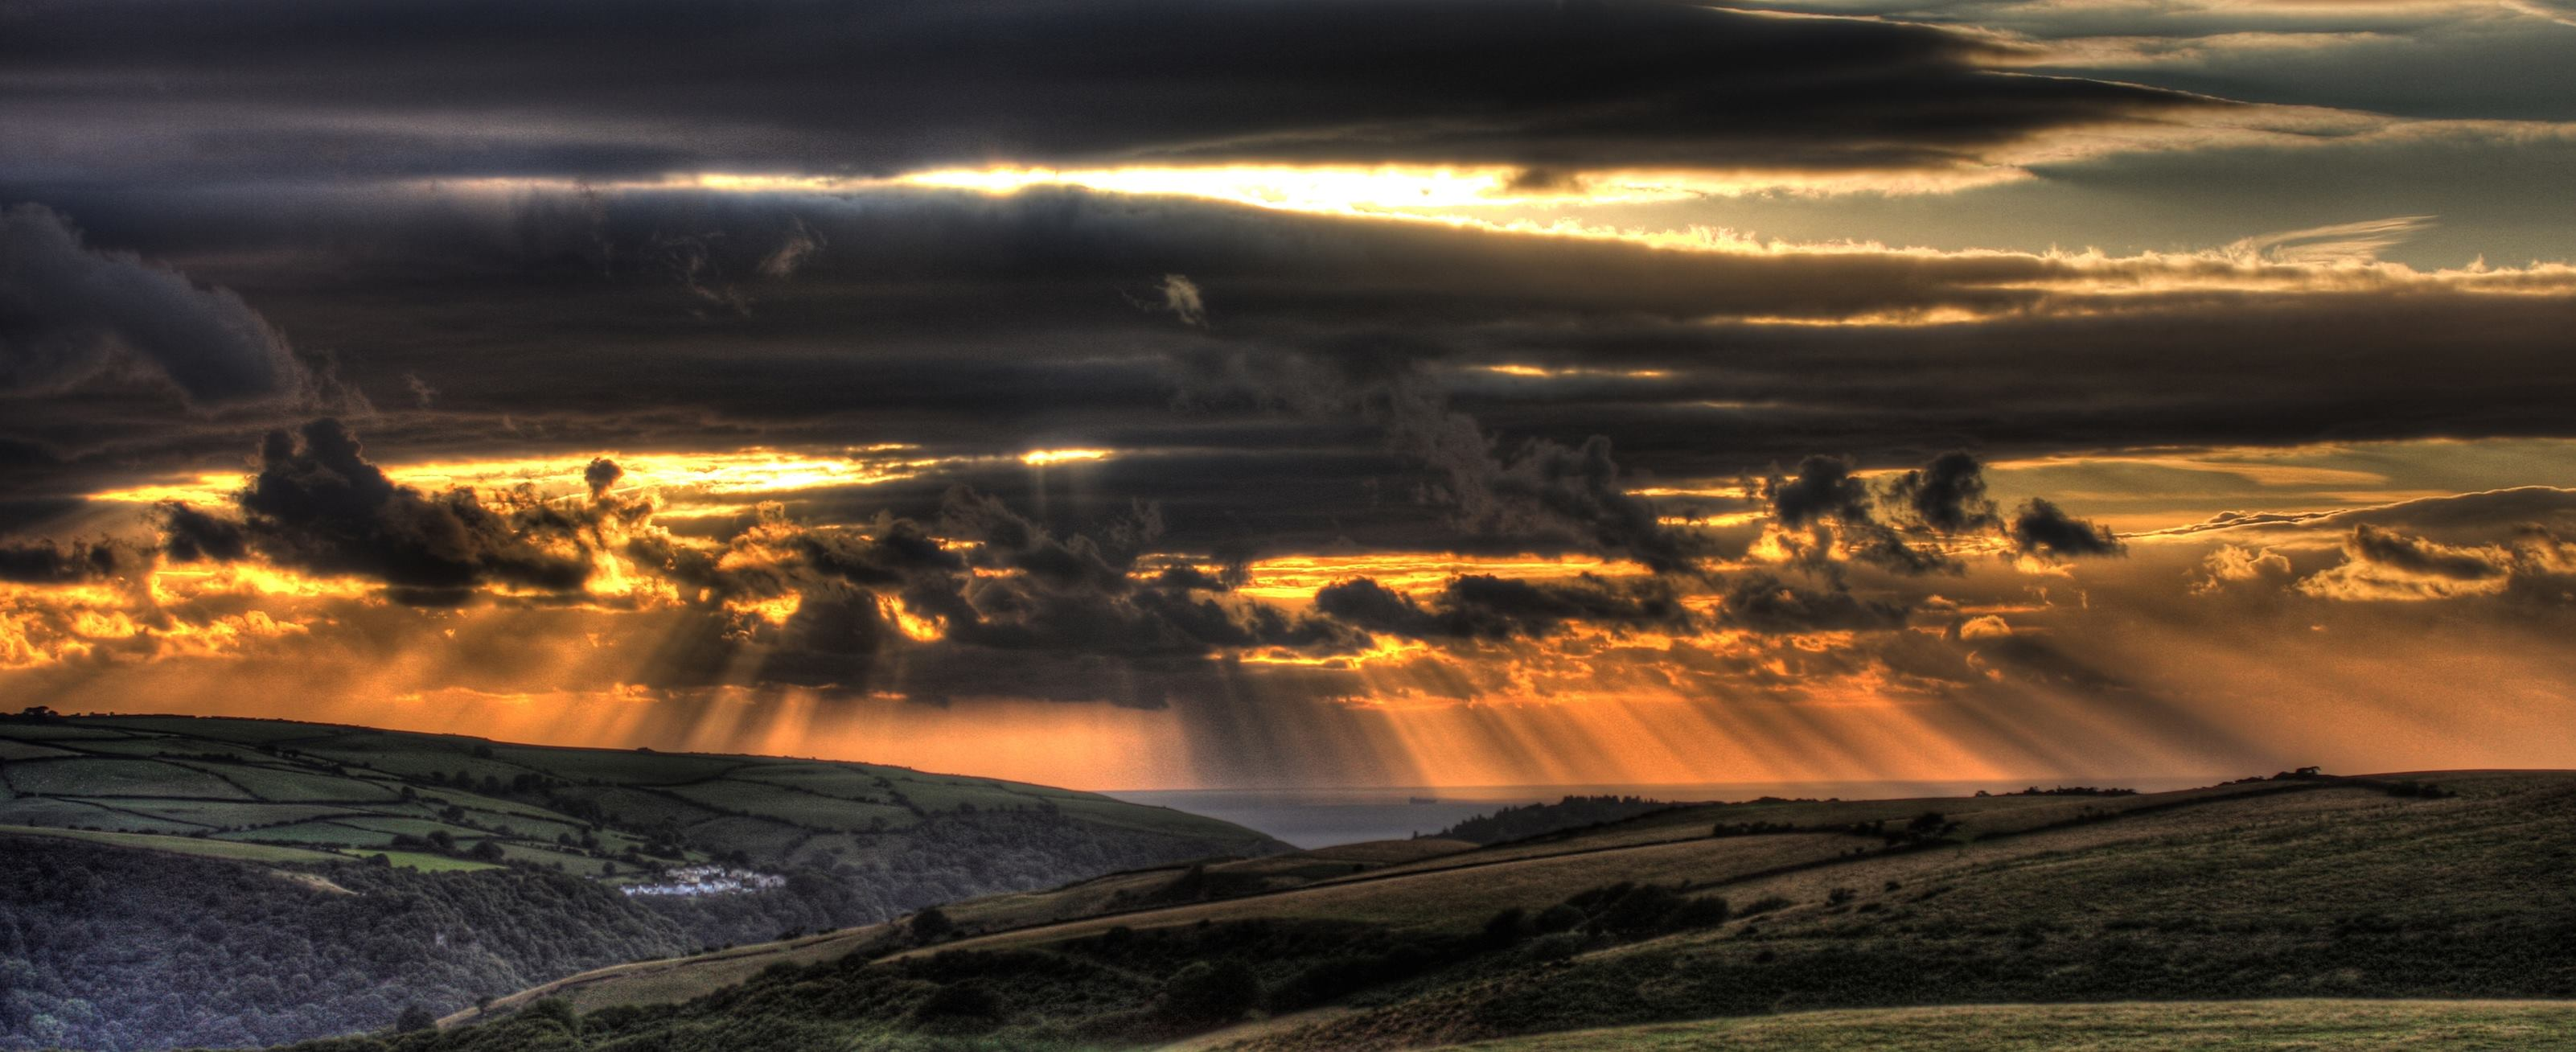 Looking towards Lynton. Spectacular photo by Peter French taken in early September.